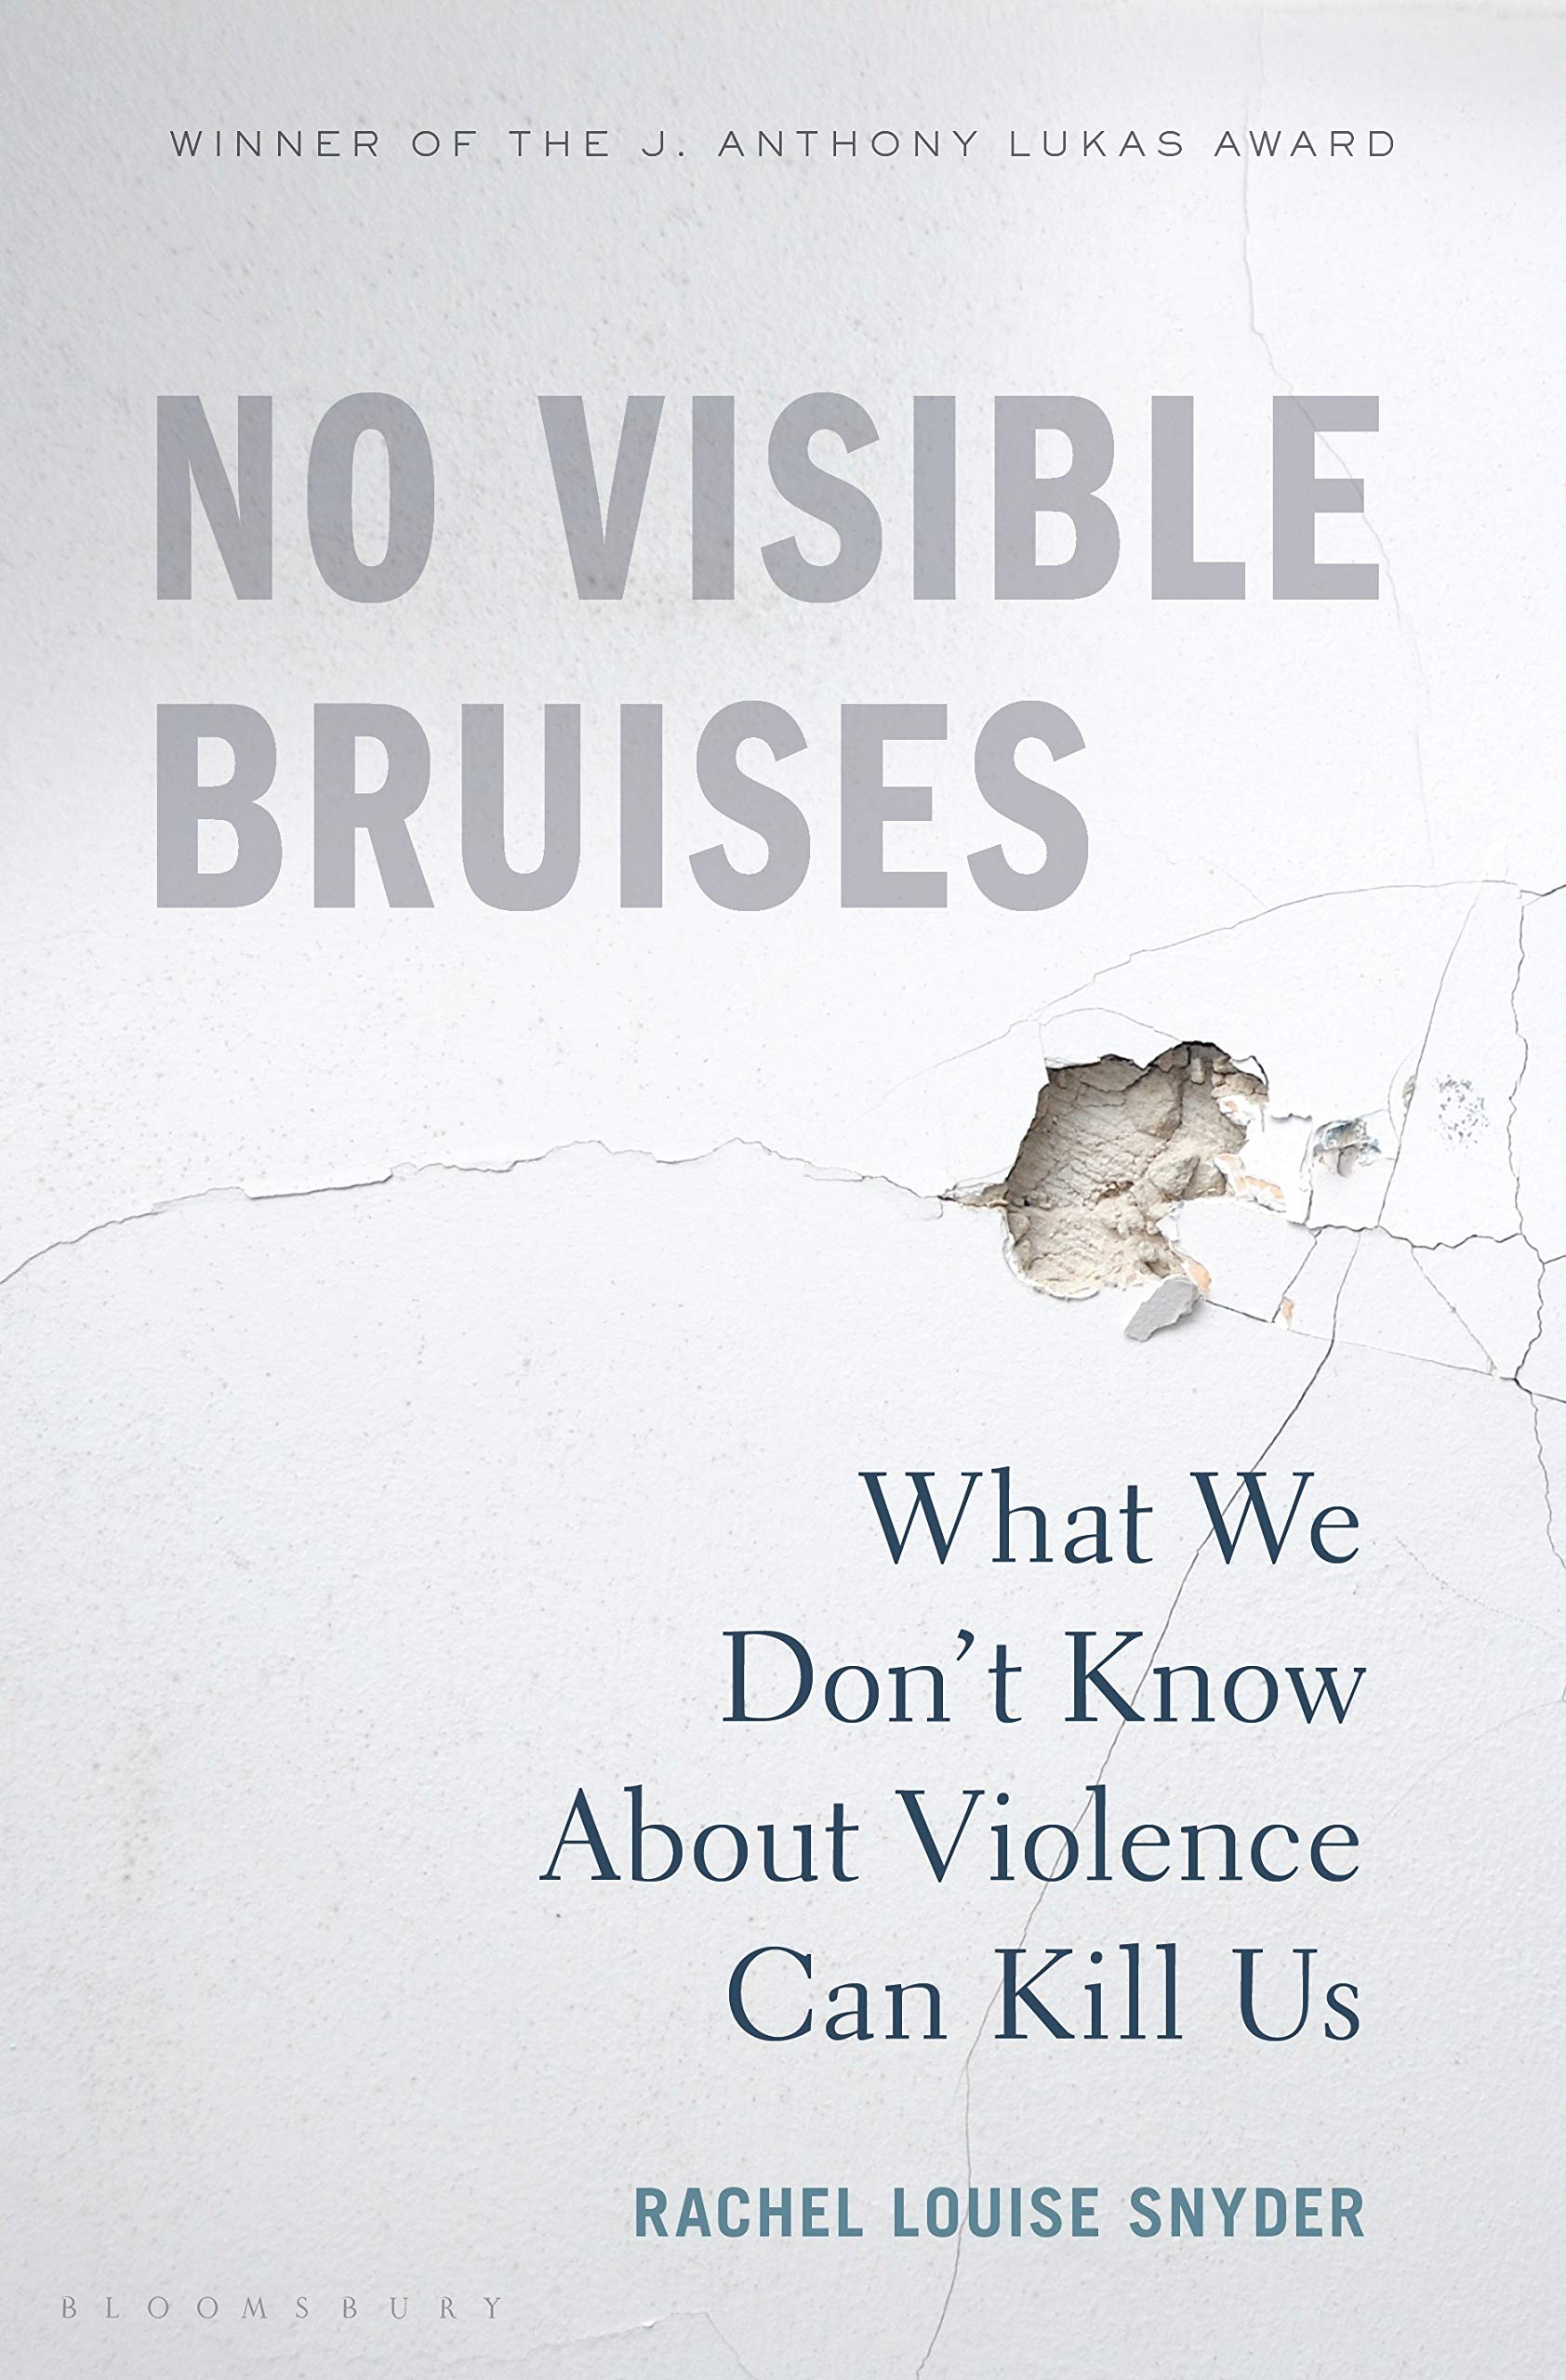 No Visible Bruises 2019 book releases